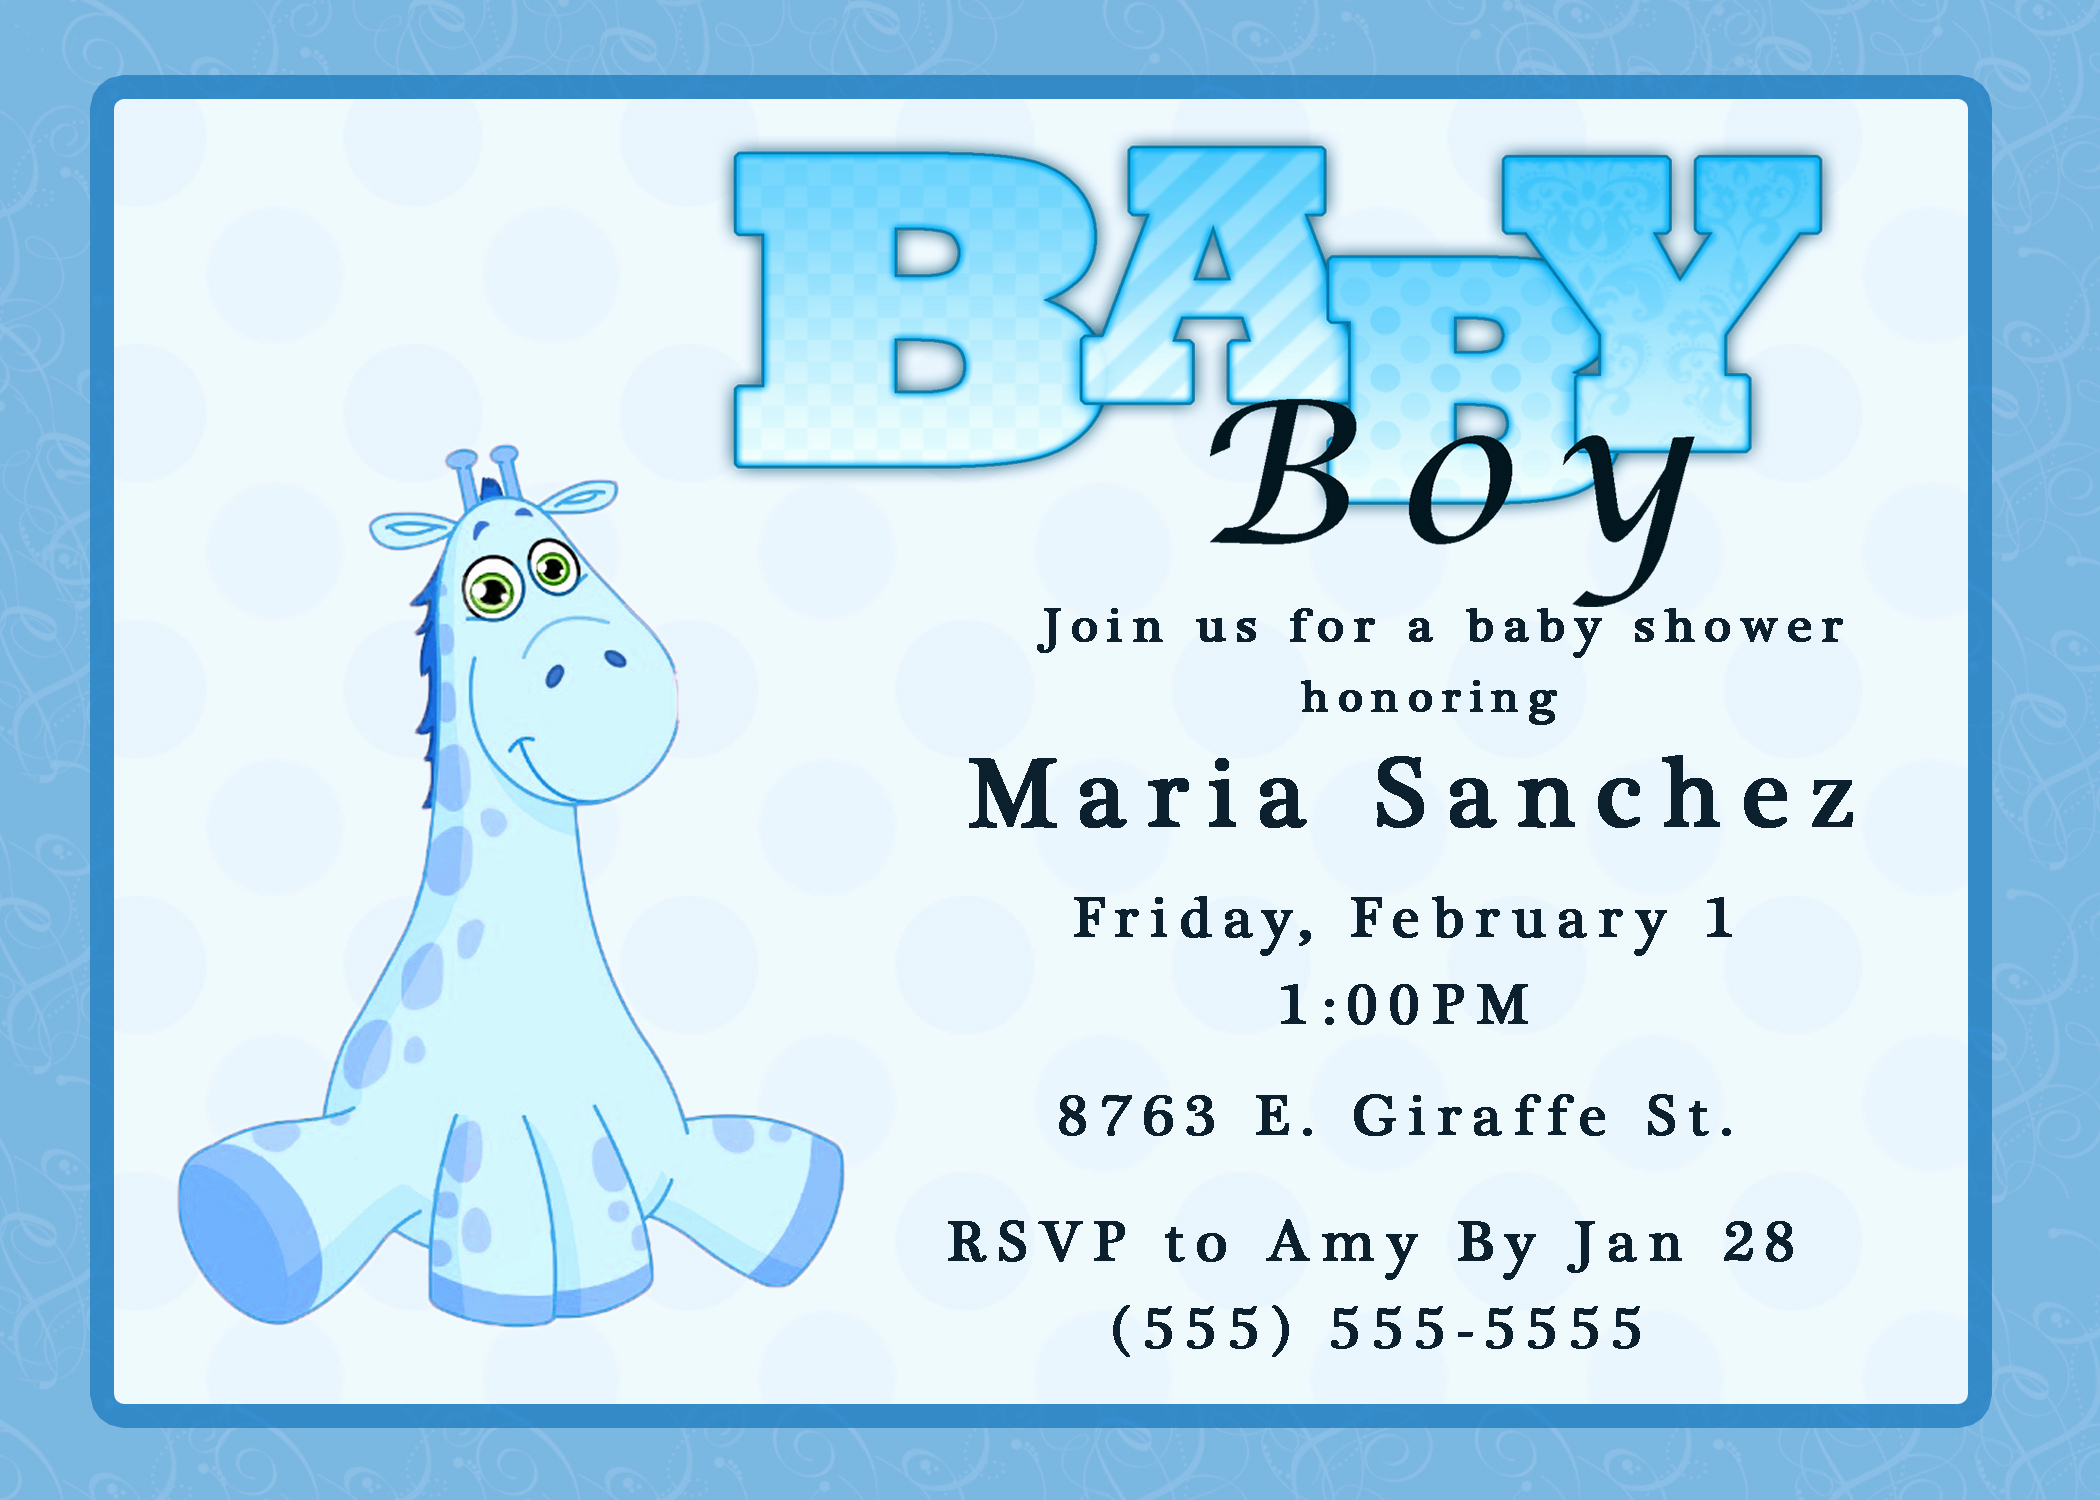 Baby Shower Invitation Examples Lovely Baby Shower Invitations